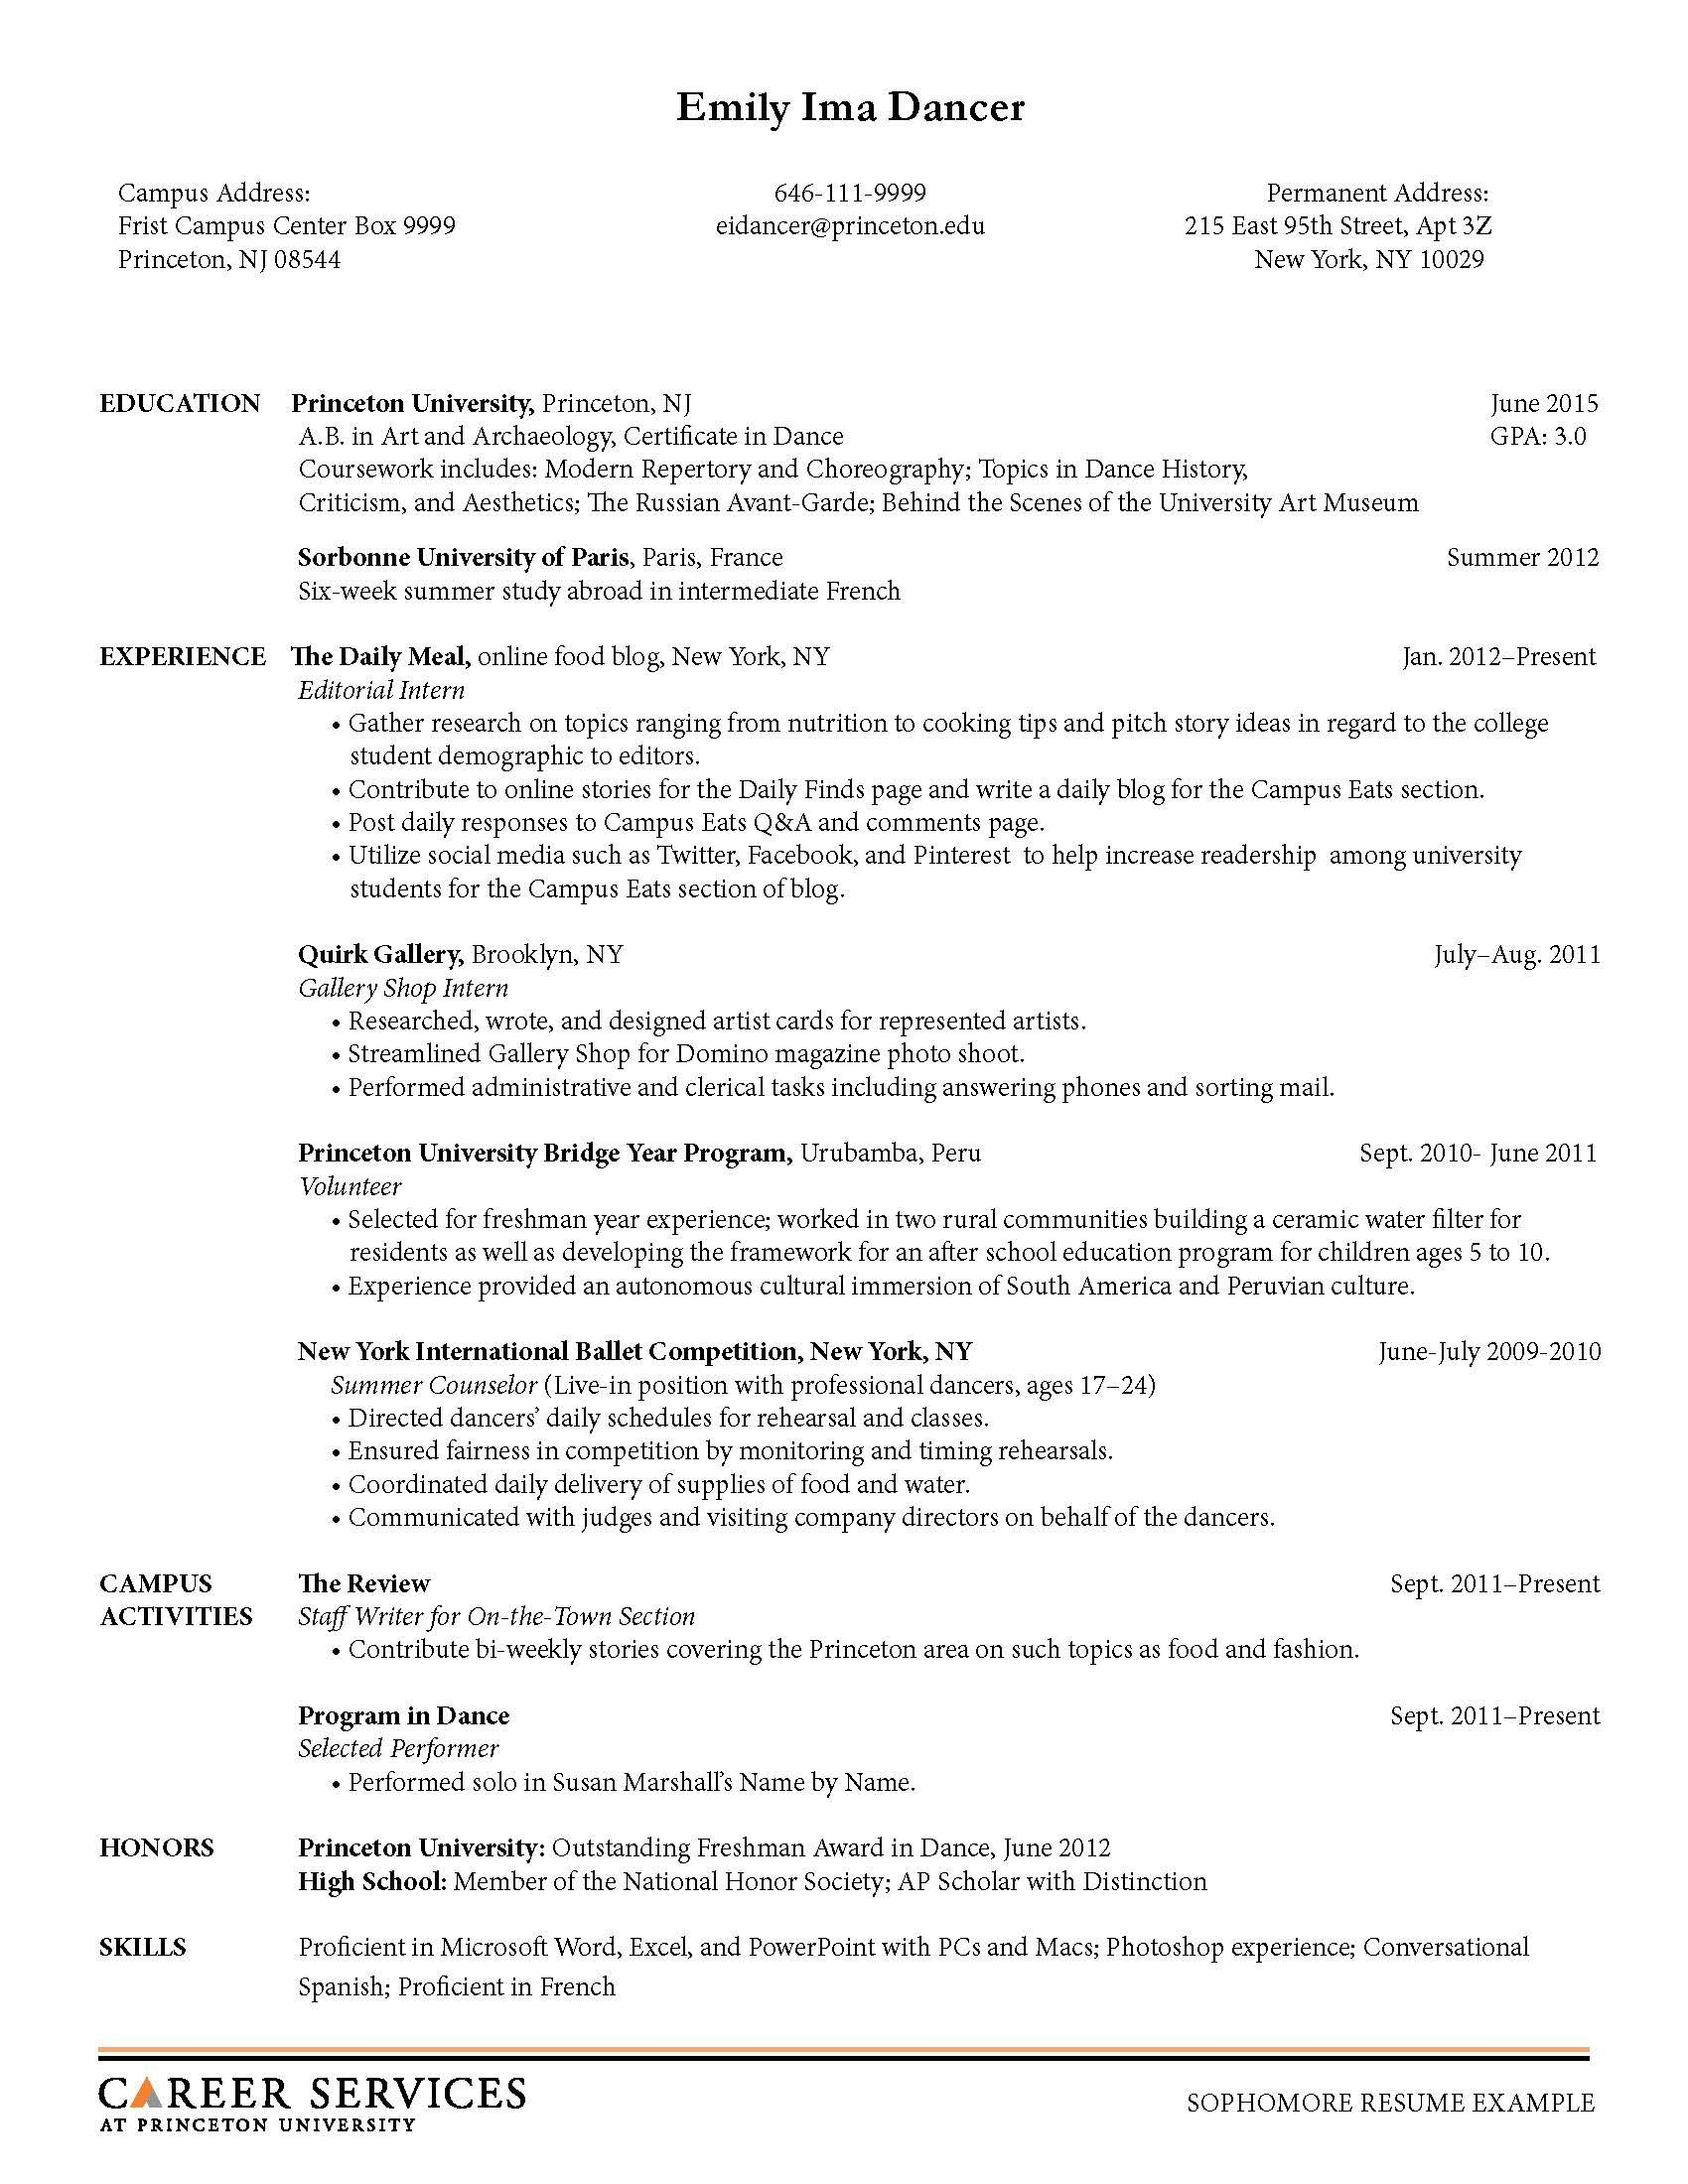 Picnictoimpeachus  Mesmerizing Sample Resume Resume And Career On Pinterest With Lovable Download Free Resume Template Besides Objective Line For Resume Furthermore What Is Objective In Resume With Appealing Resume For Retail Manager Also Combination Resume Format In Addition Sas Programmer Resume And Resume Qualifications List As Well As Profile Statement For Resume Additionally Resume Defintion From Pinterestcom With Picnictoimpeachus  Lovable Sample Resume Resume And Career On Pinterest With Appealing Download Free Resume Template Besides Objective Line For Resume Furthermore What Is Objective In Resume And Mesmerizing Resume For Retail Manager Also Combination Resume Format In Addition Sas Programmer Resume From Pinterestcom